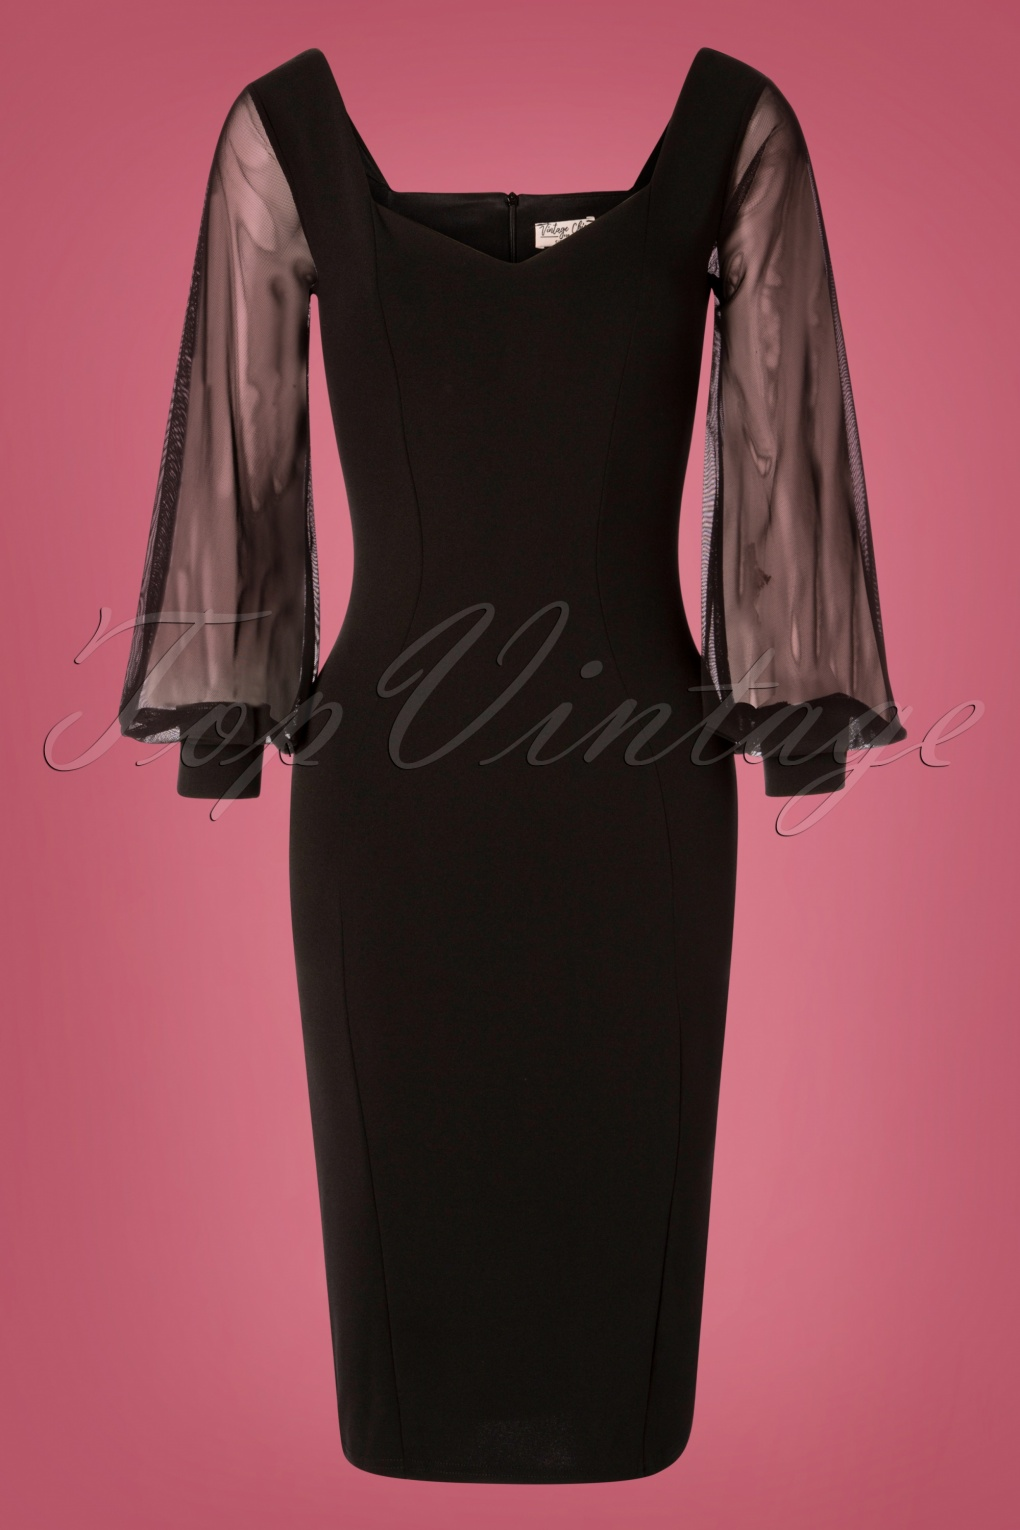 Rockabilly Dresses | Rockabilly Clothing | Viva Las Vegas 50s Felicity Pencil Dress in Black £52.75 AT vintagedancer.com